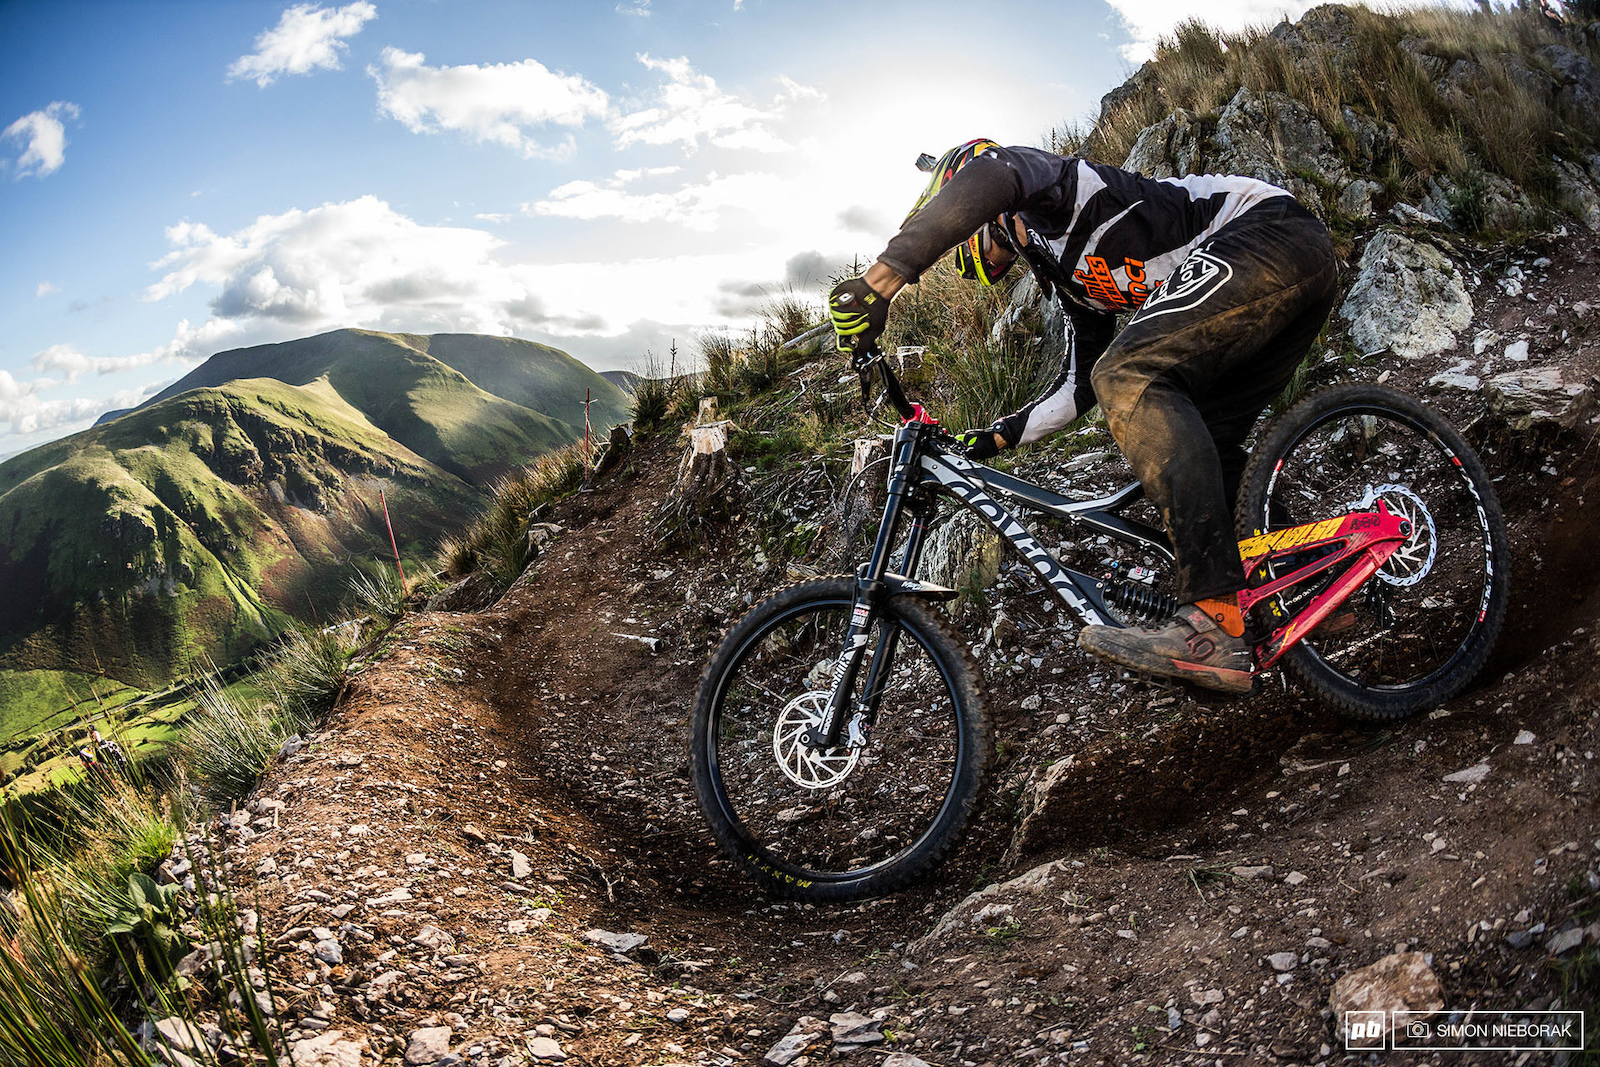 Wales is a paradise for mountain bikers and photographers... when the sun is shining.